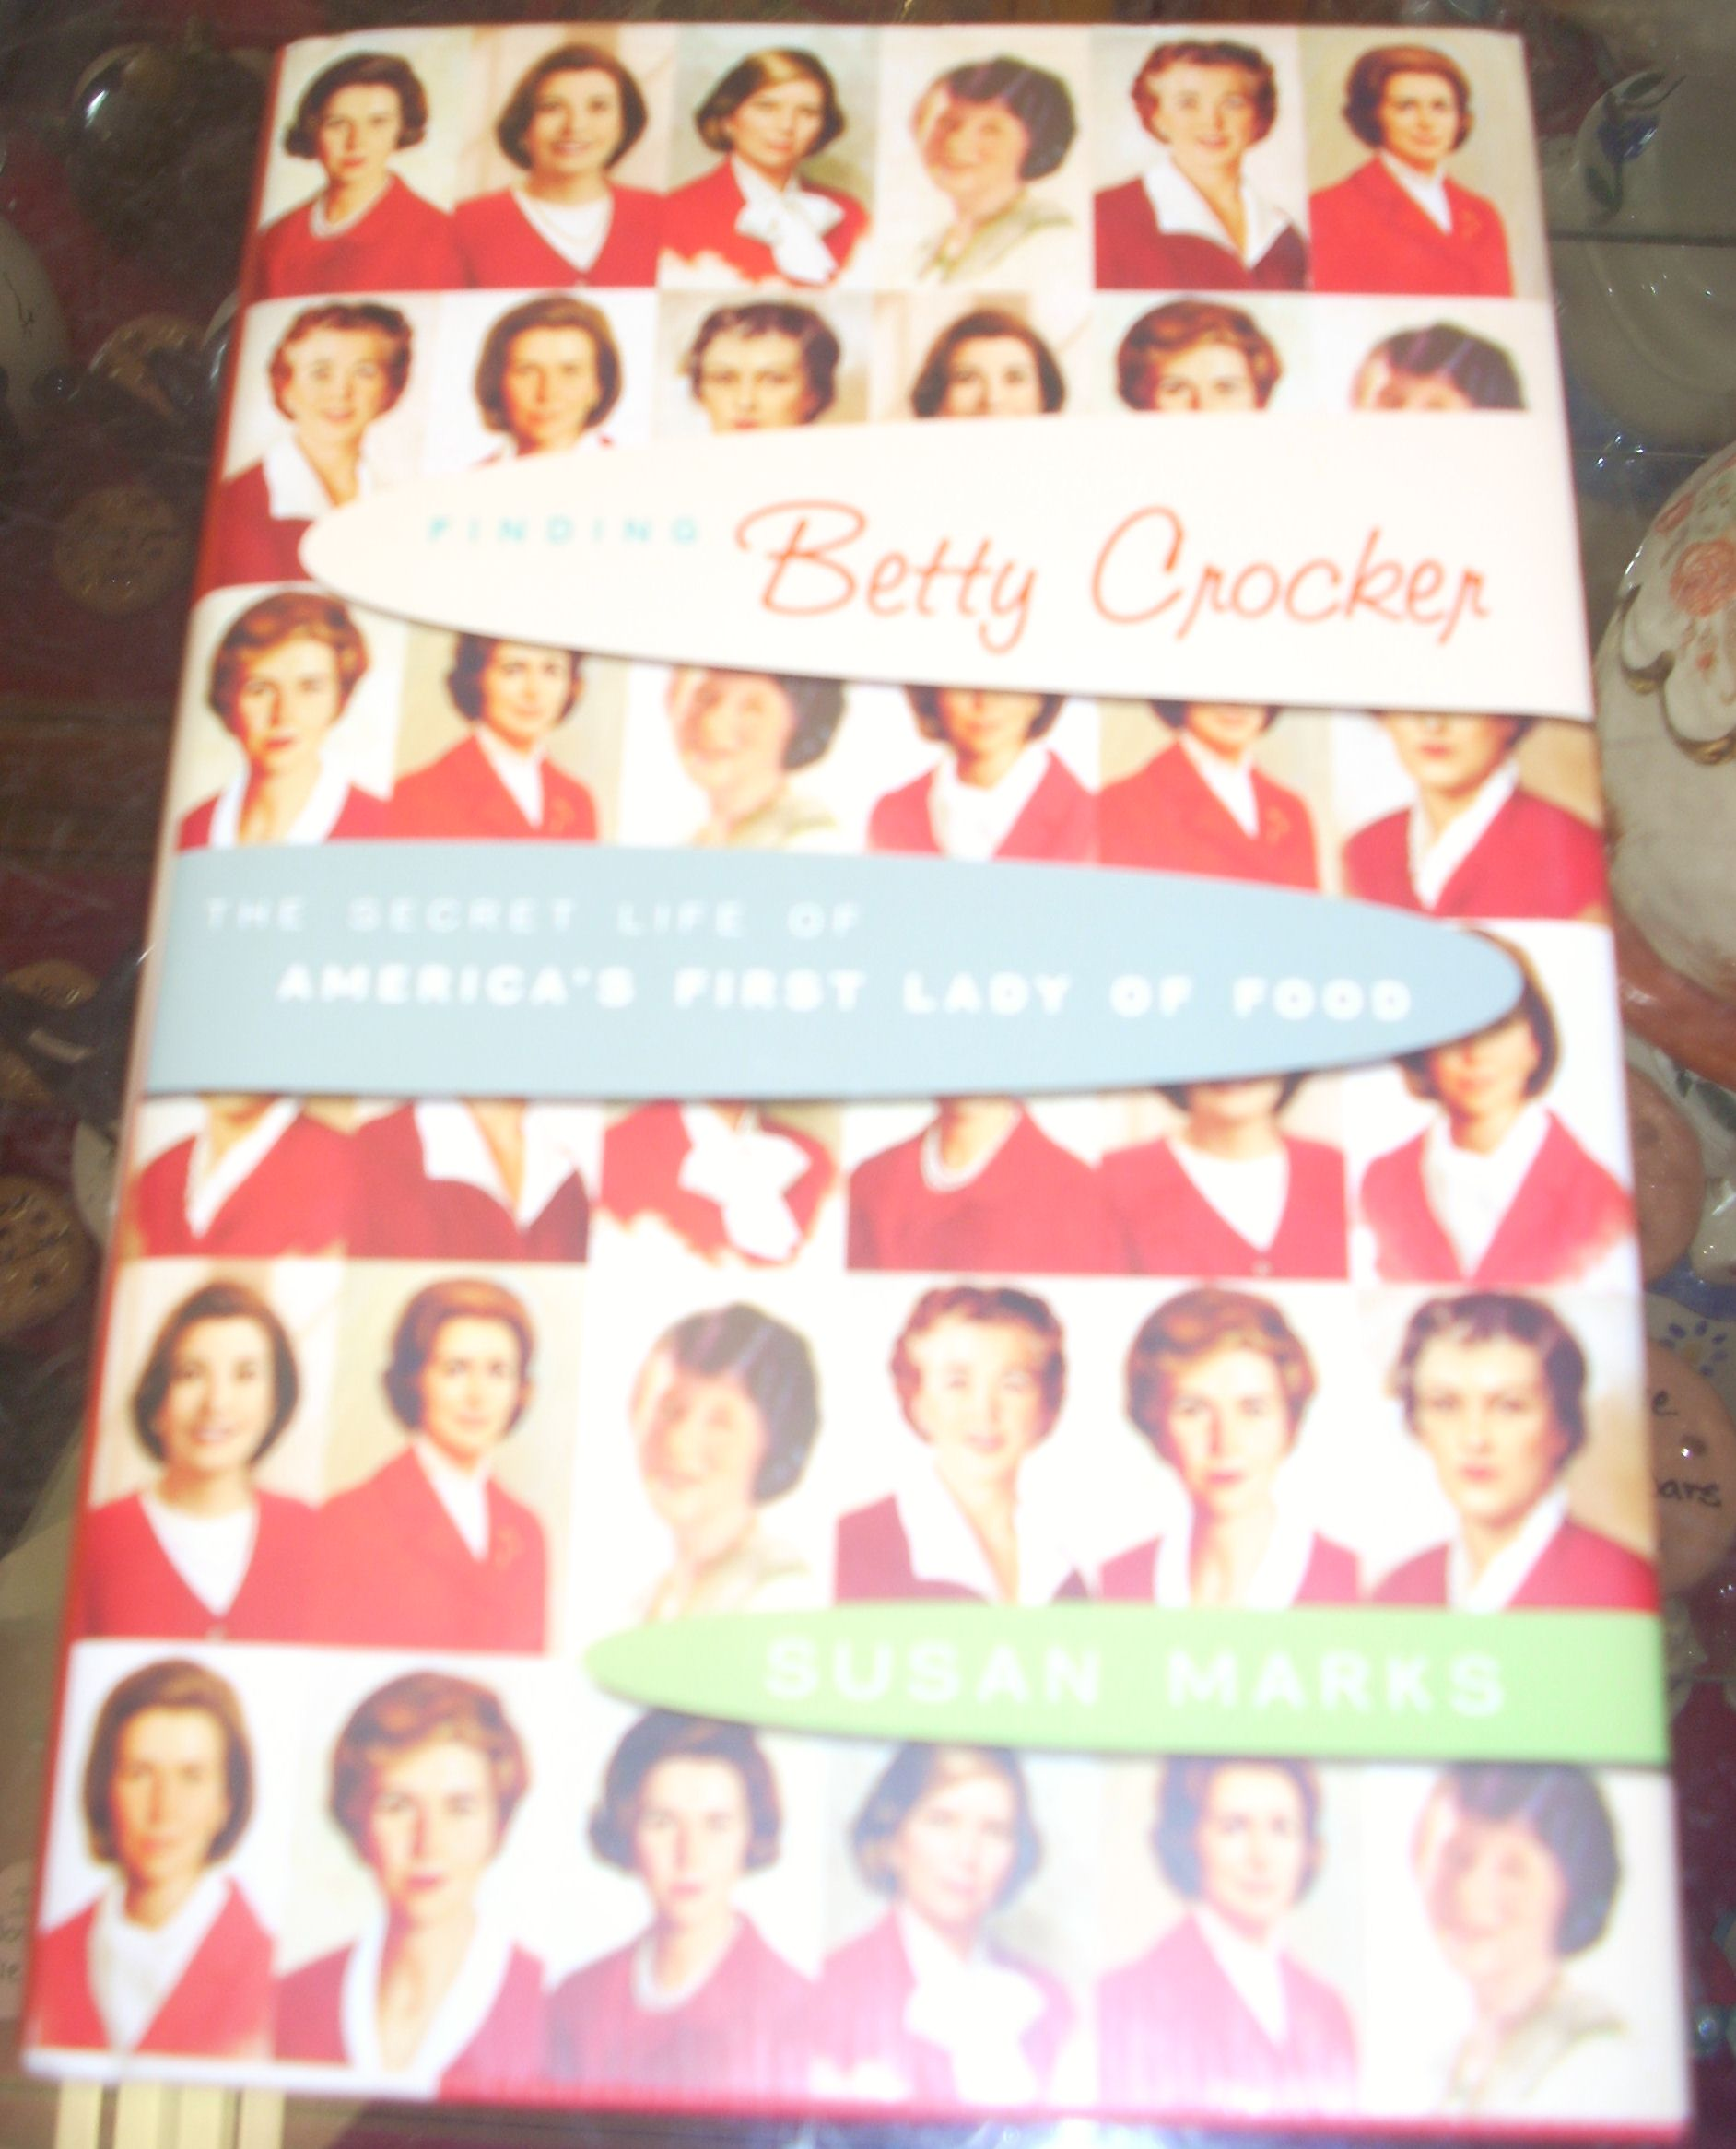 HQ Finding Betty Crocker: The Secret Life Of America's First La Wallpapers | File 381.3Kb